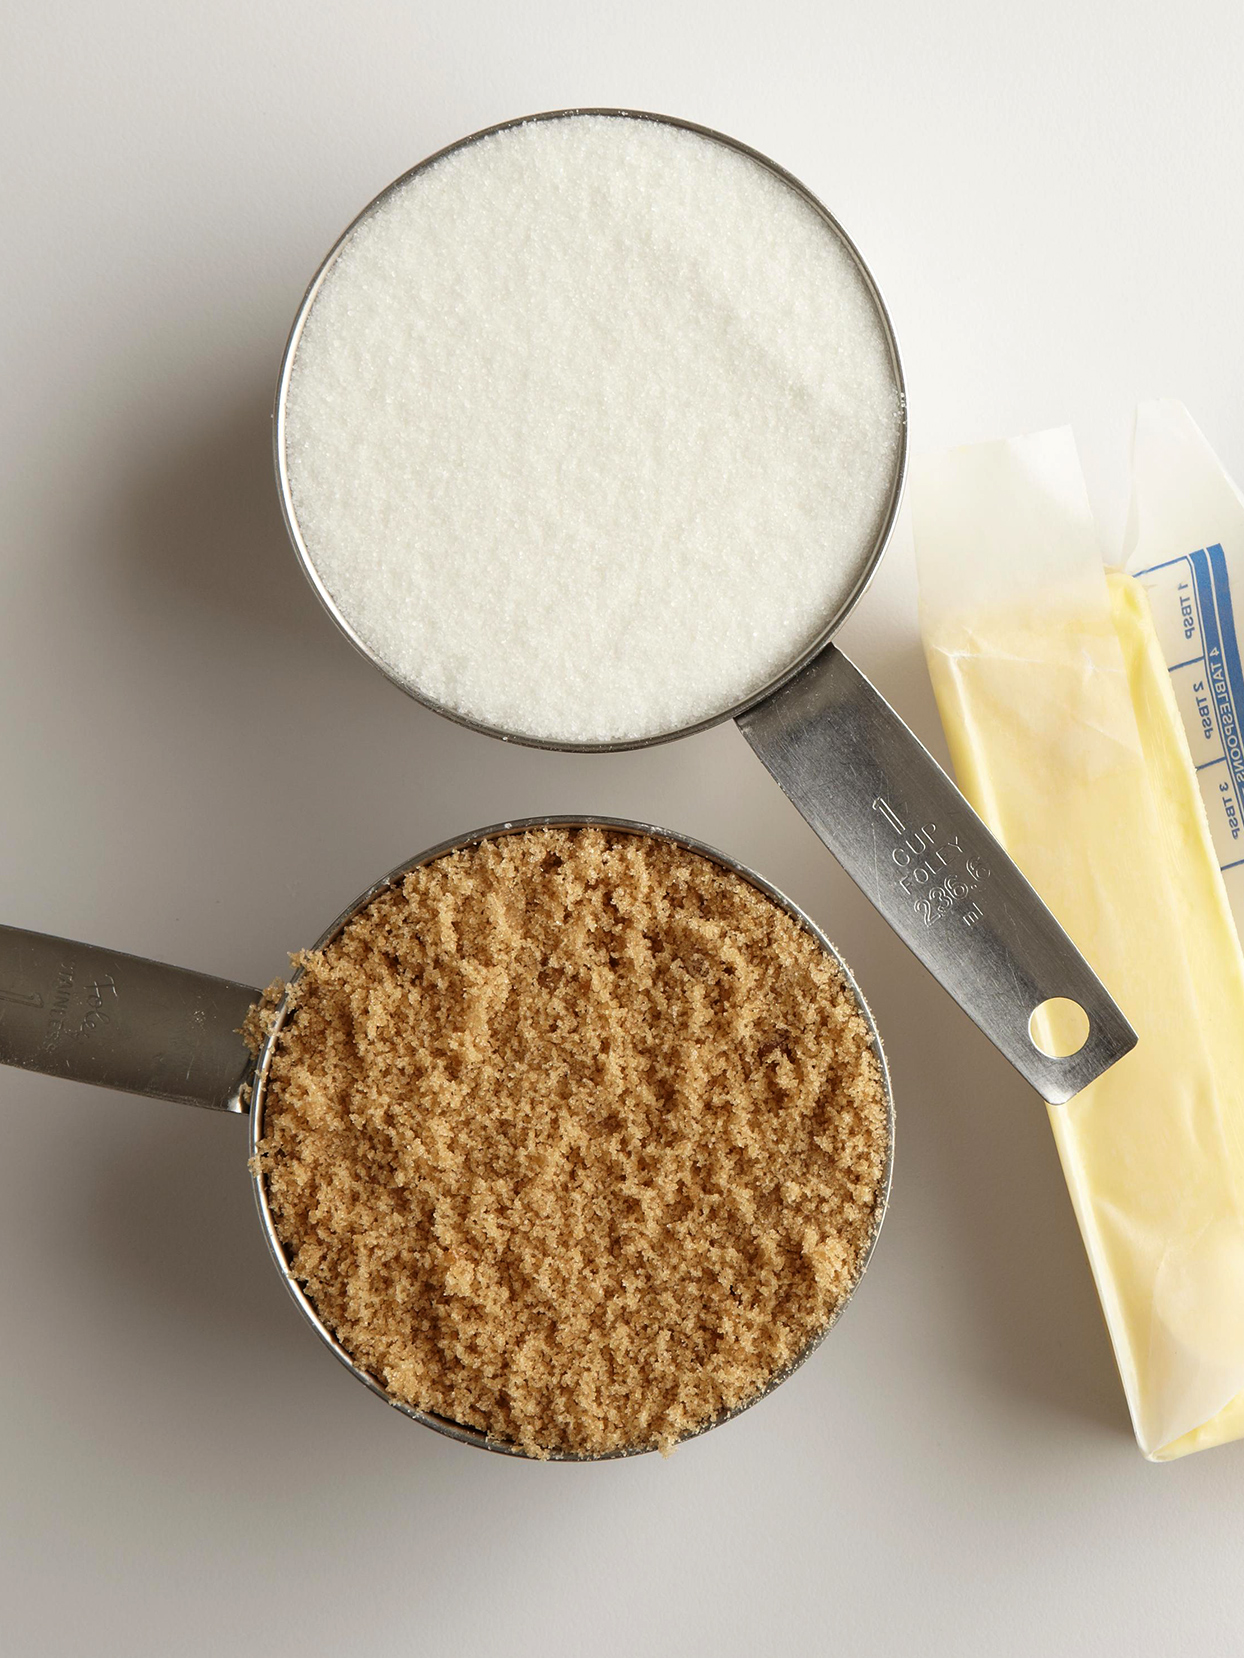 How Can You Substitute Brown Sugar for White Sugar?